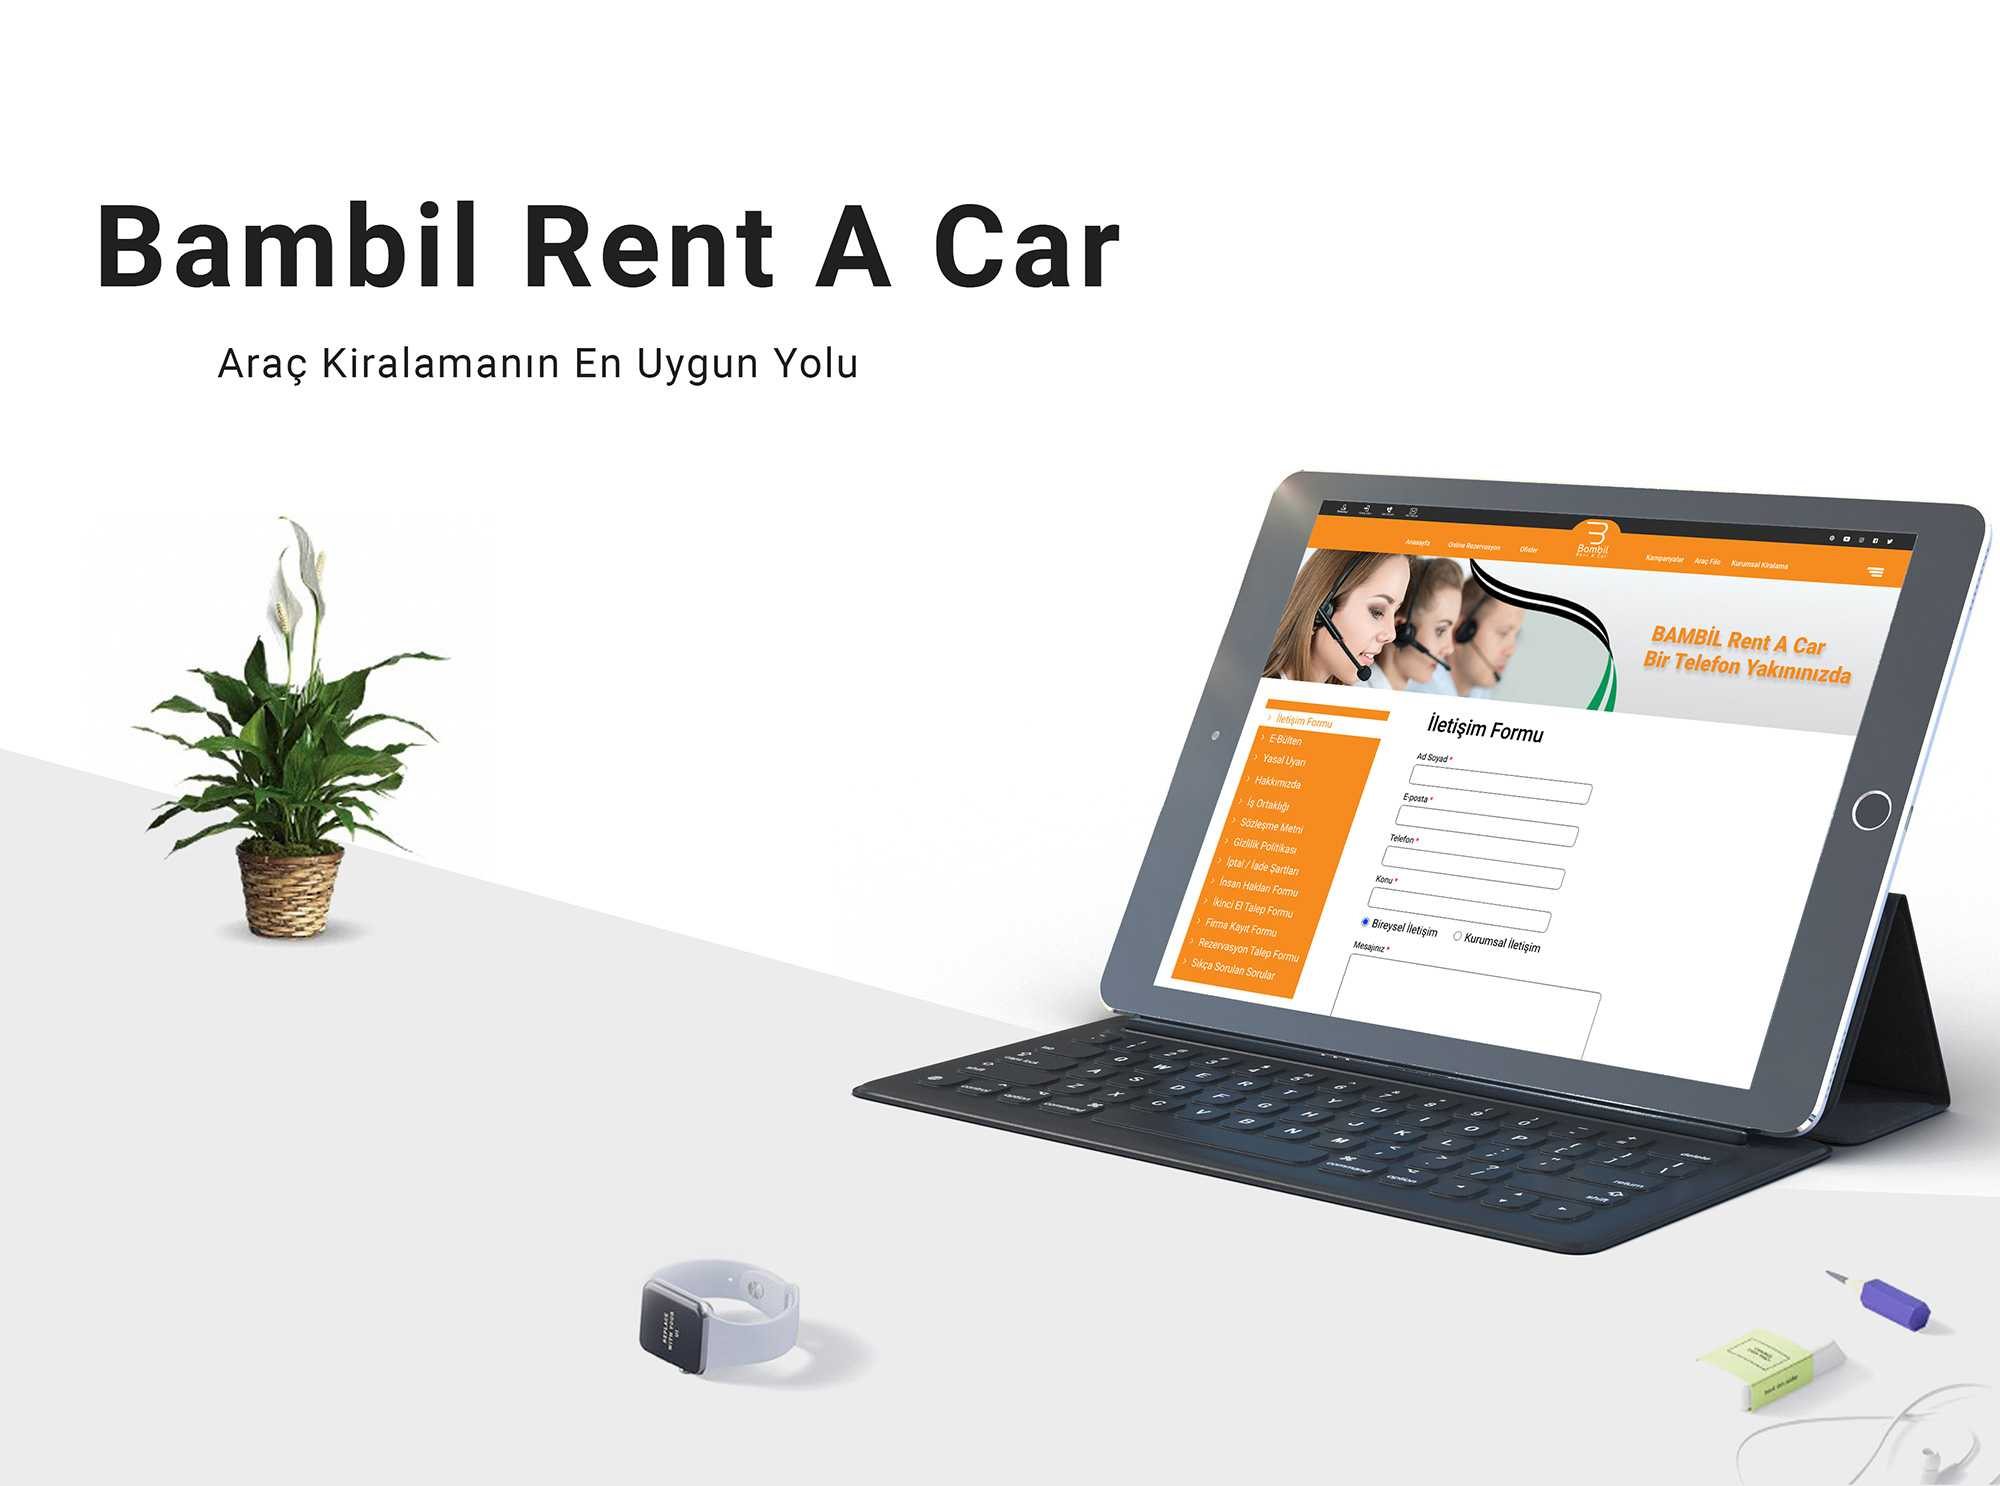 Bambil Rent A Car Web Site Tasarımı